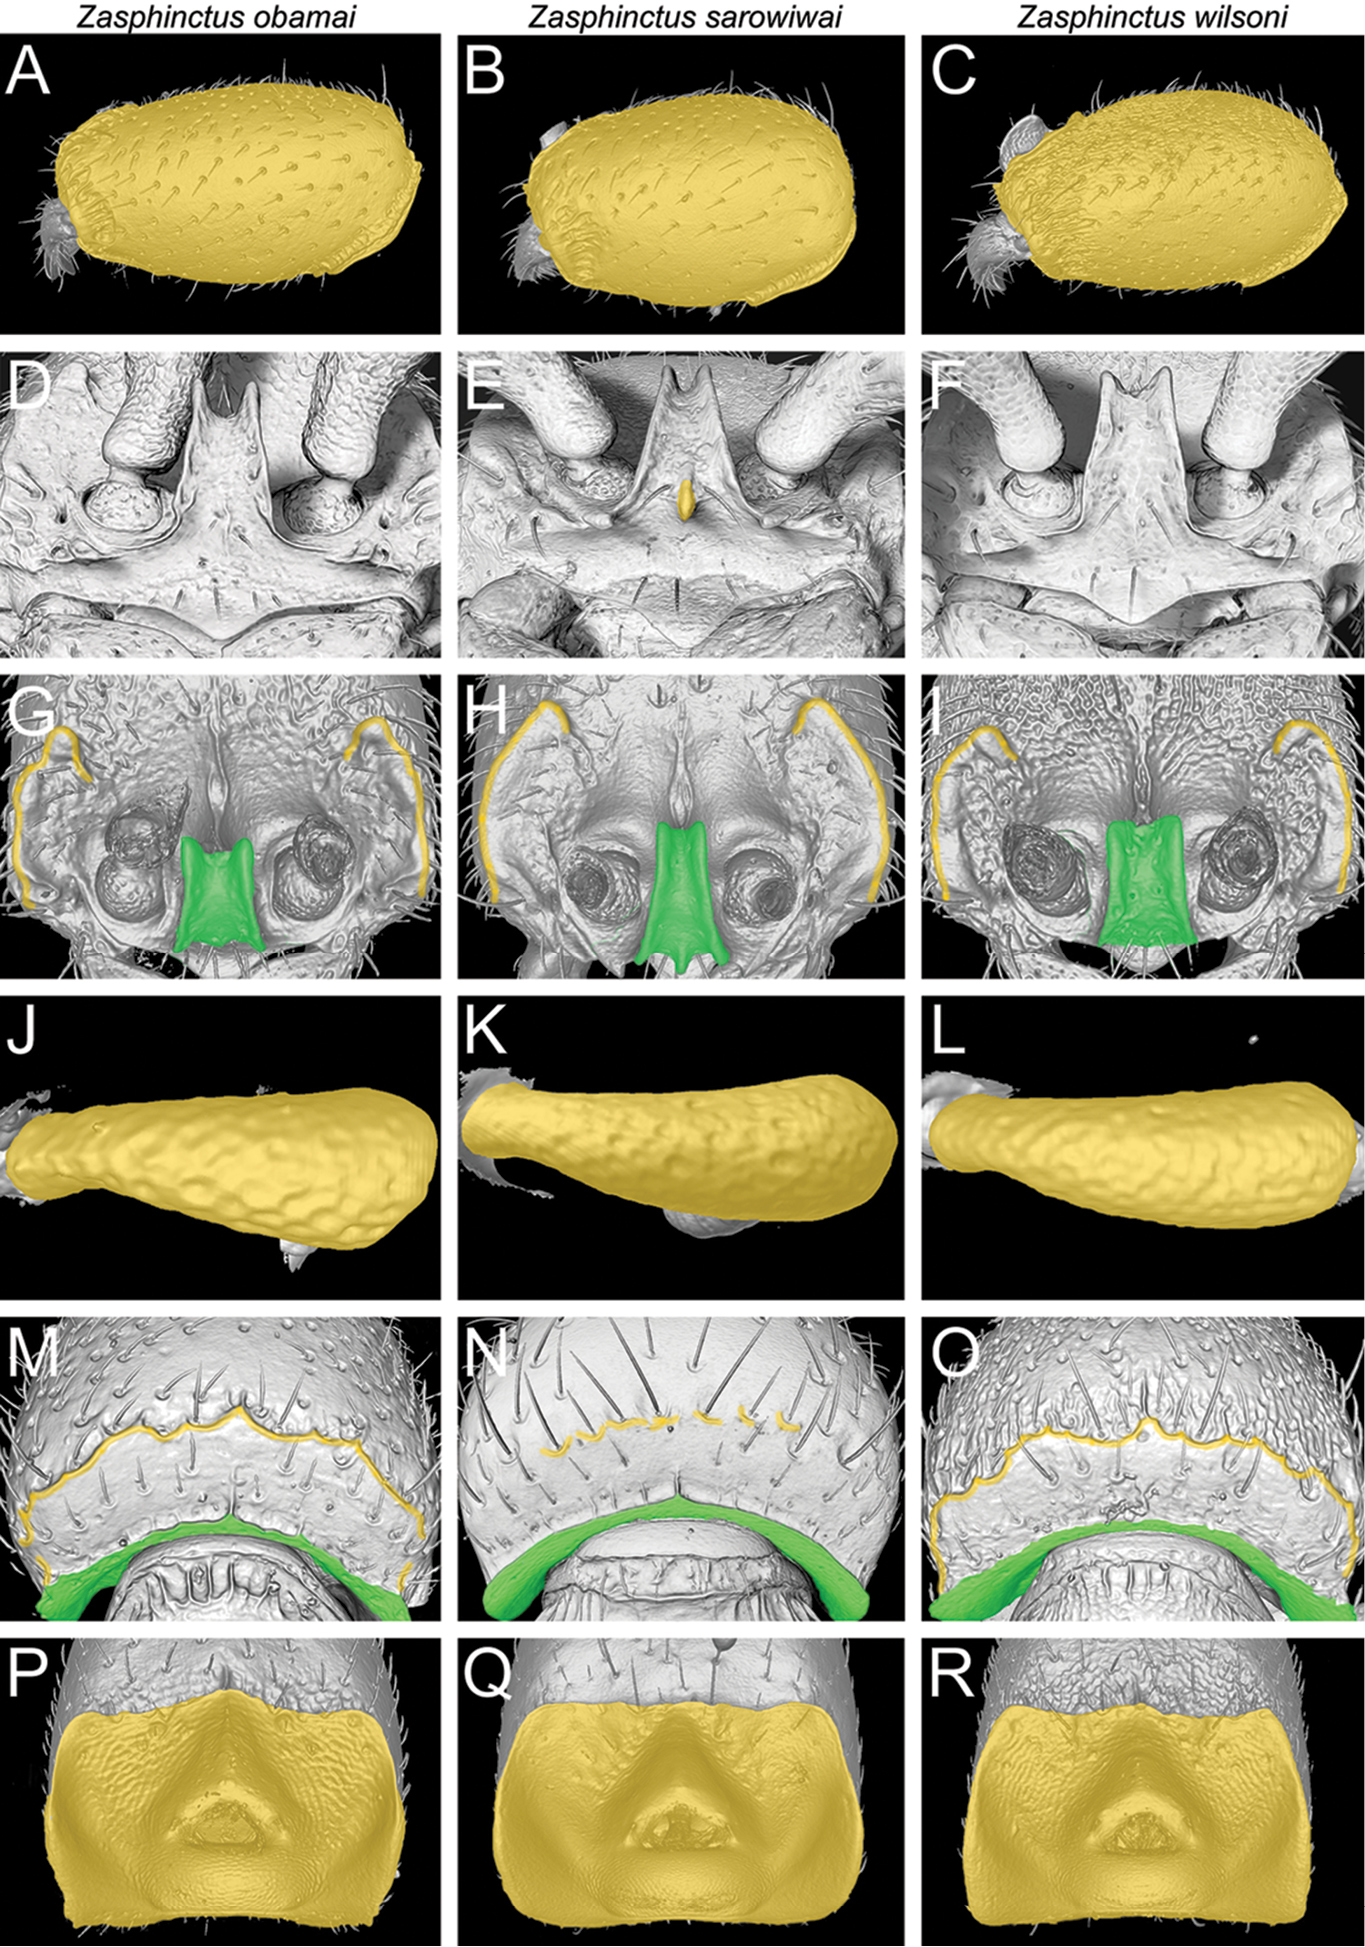 Next-generation morphological character discovery and